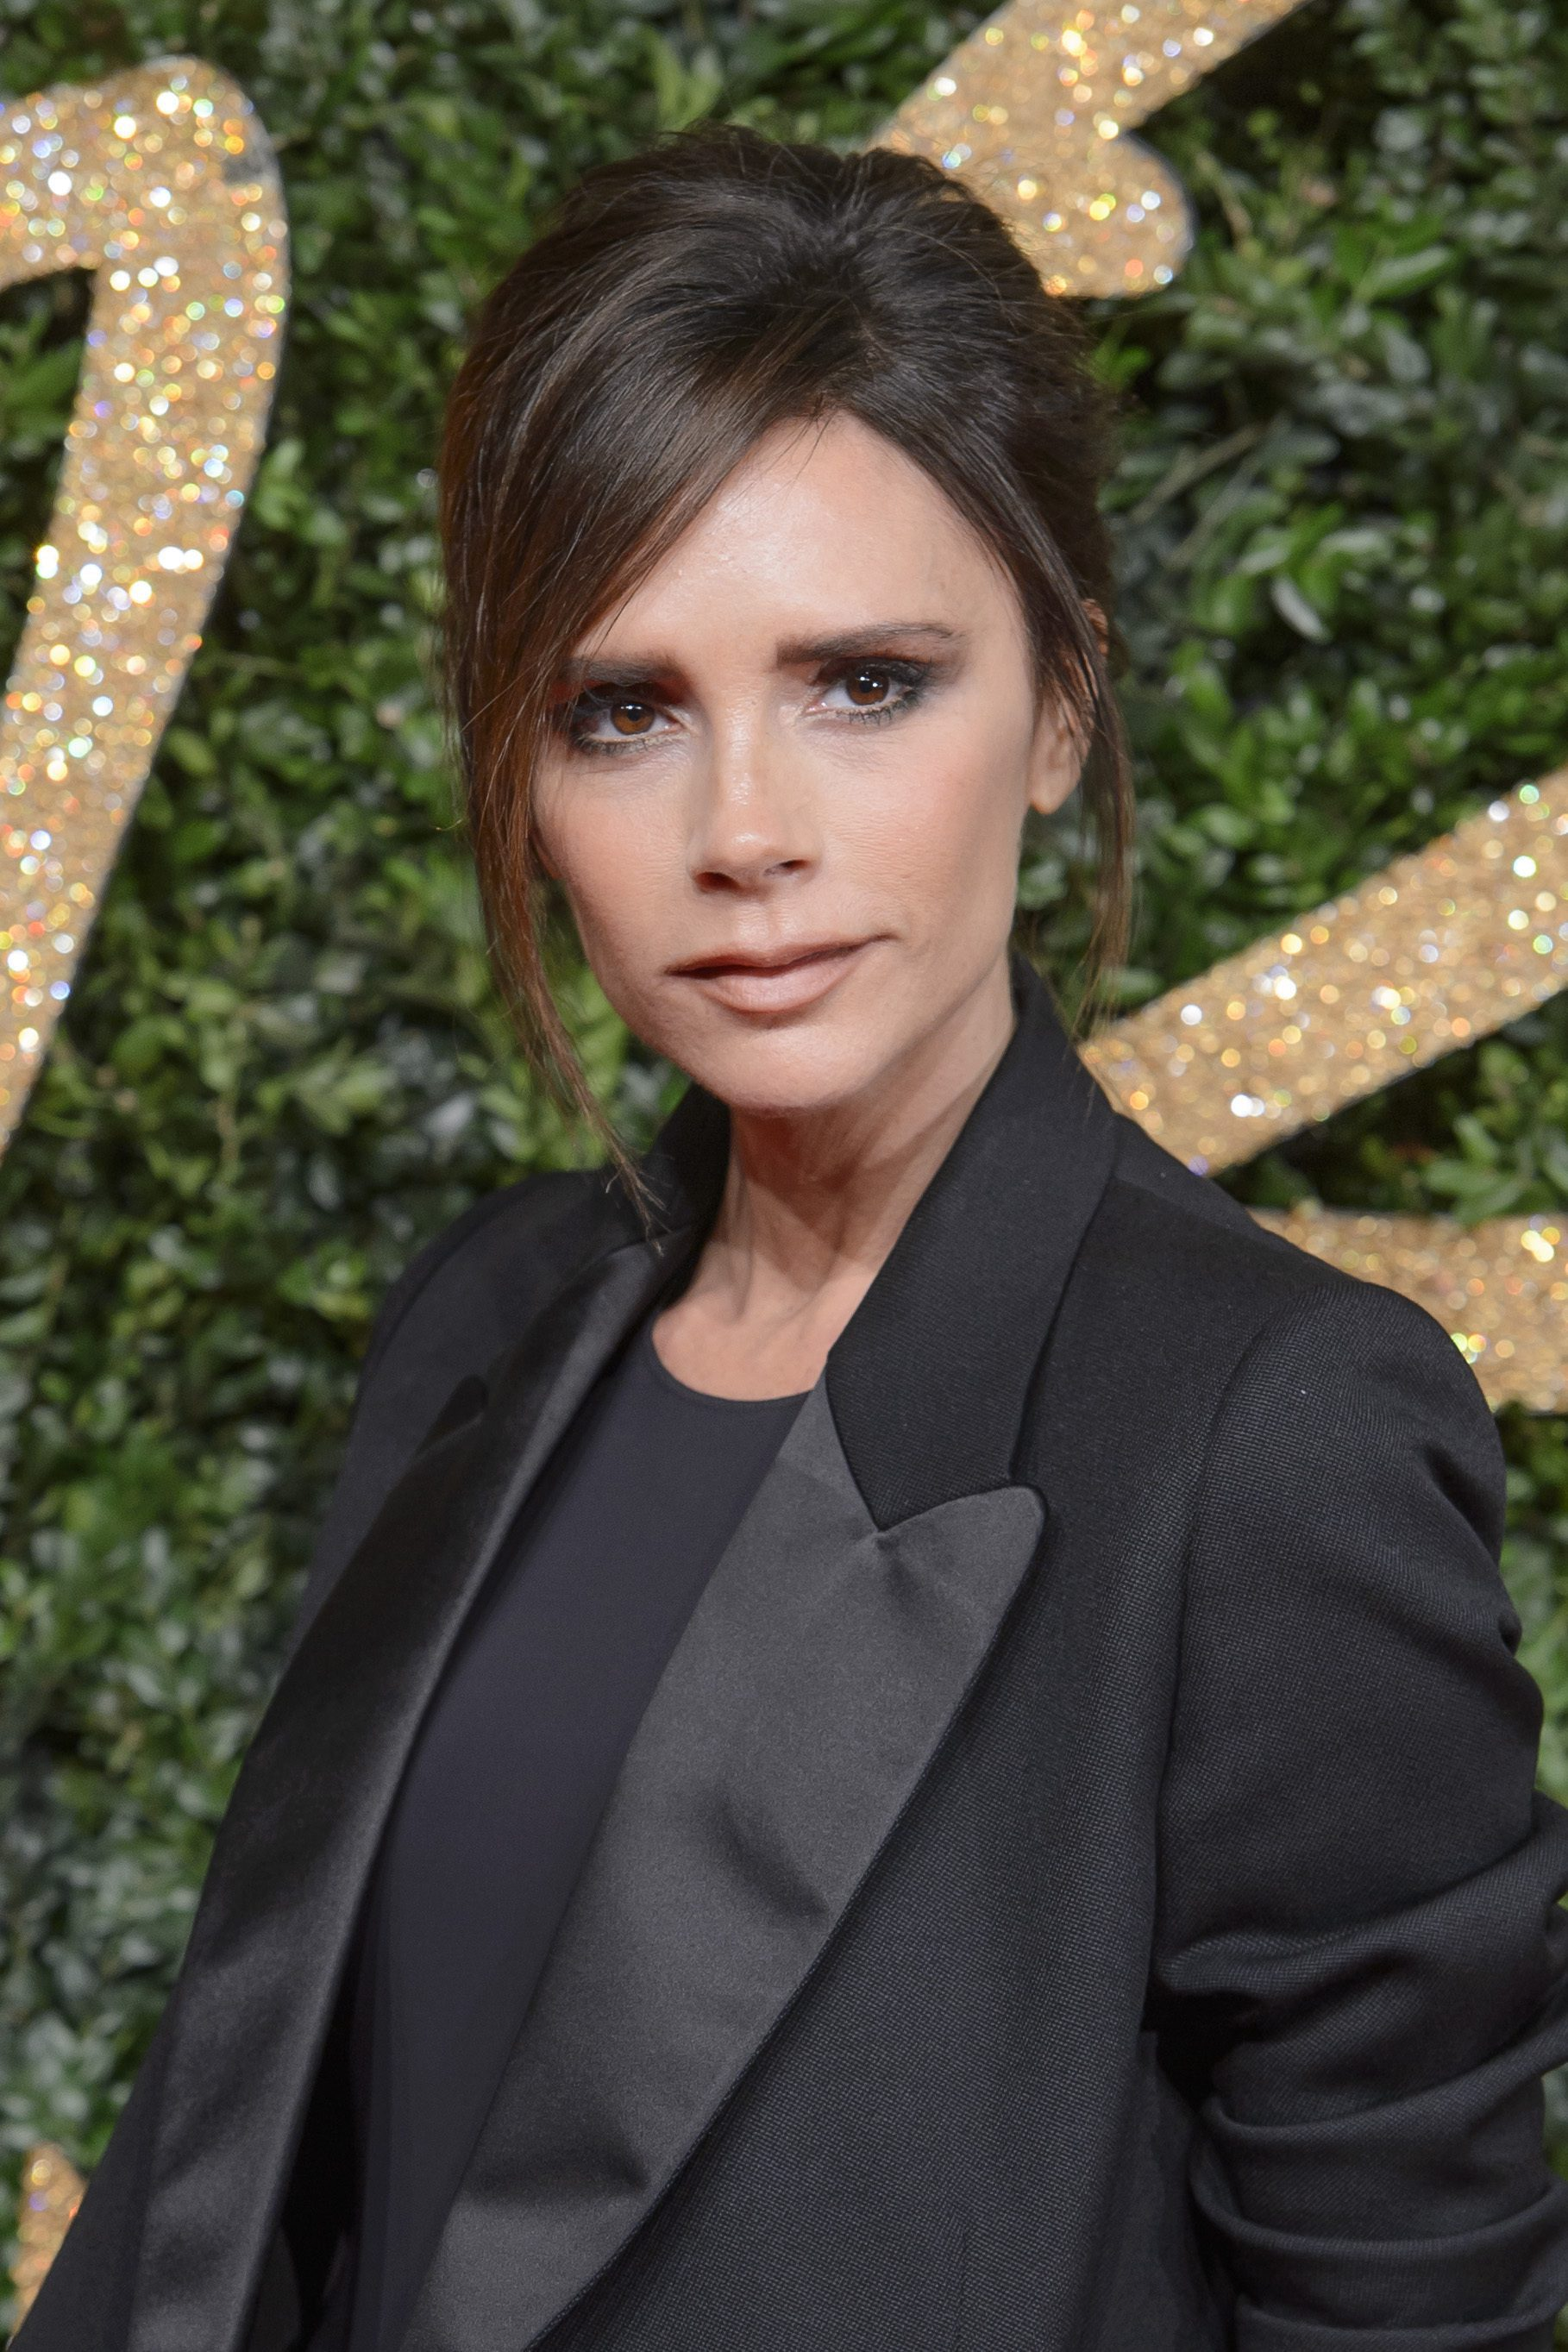 Victoria Beckham's Retro Updo With Side Bangs